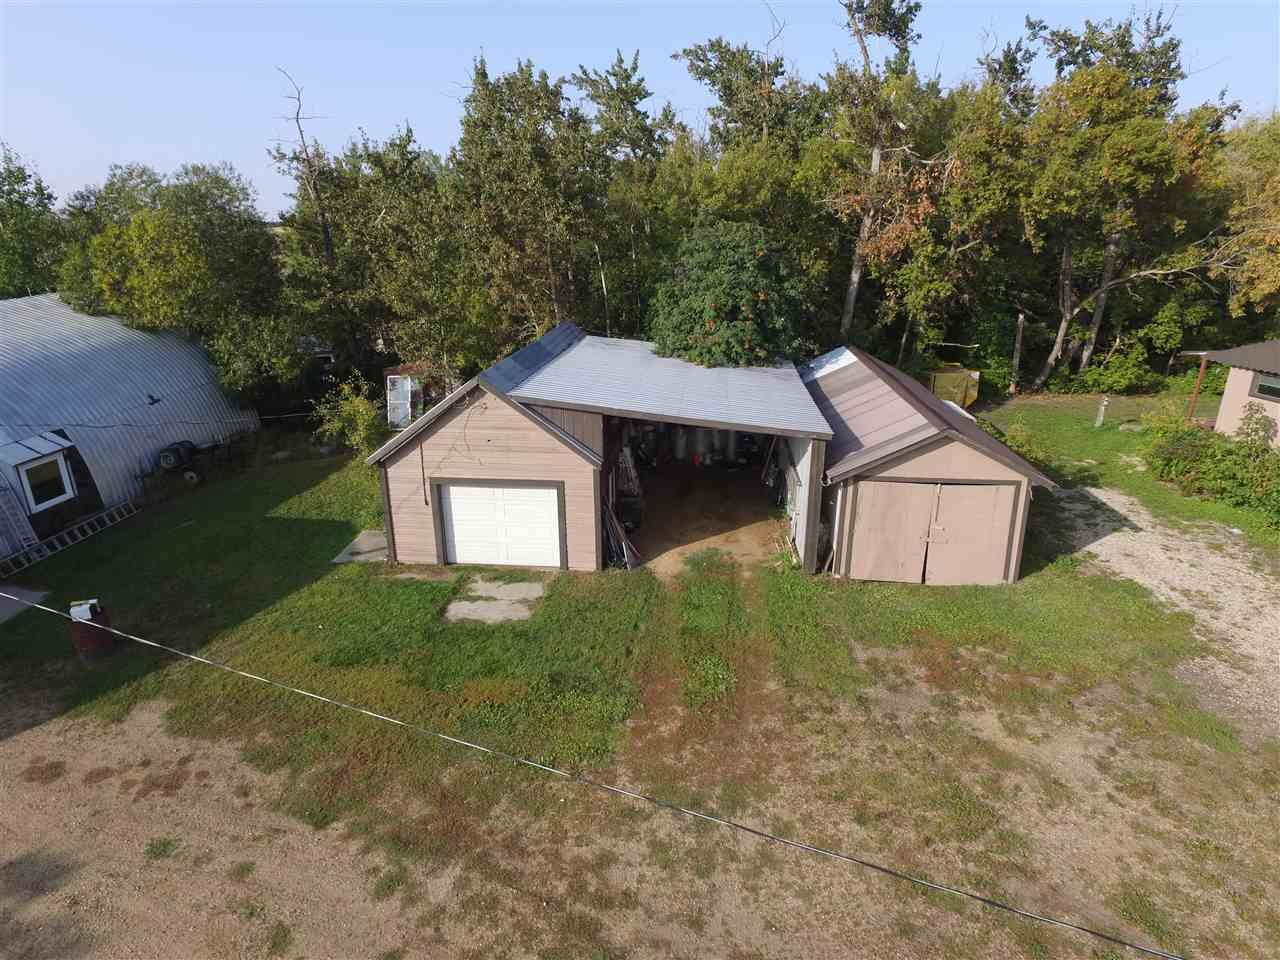 Photo 13: Photos: 472050A Hwy 814: Rural Wetaskiwin County House for sale : MLS®# E4213442